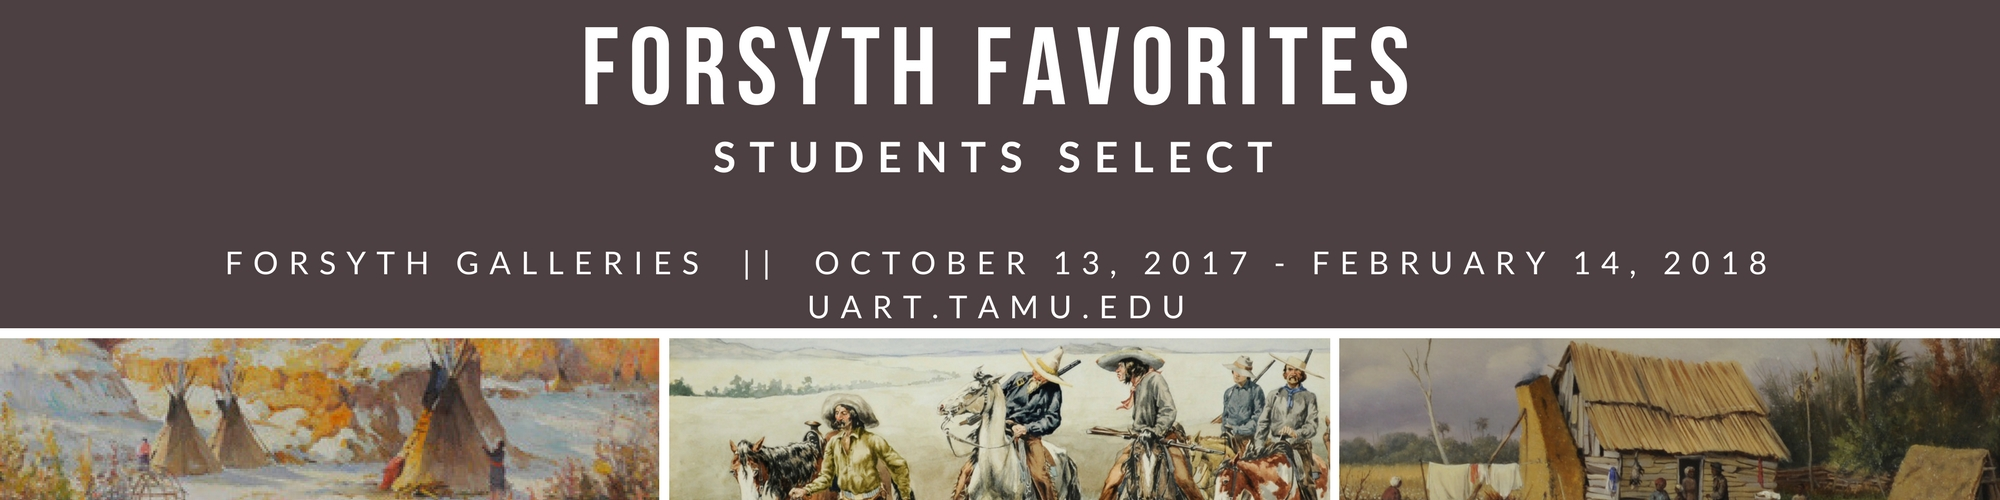 Forsyth Favorites: Students Select will be on display in the Forsyth Galleries through February 14, 2018.